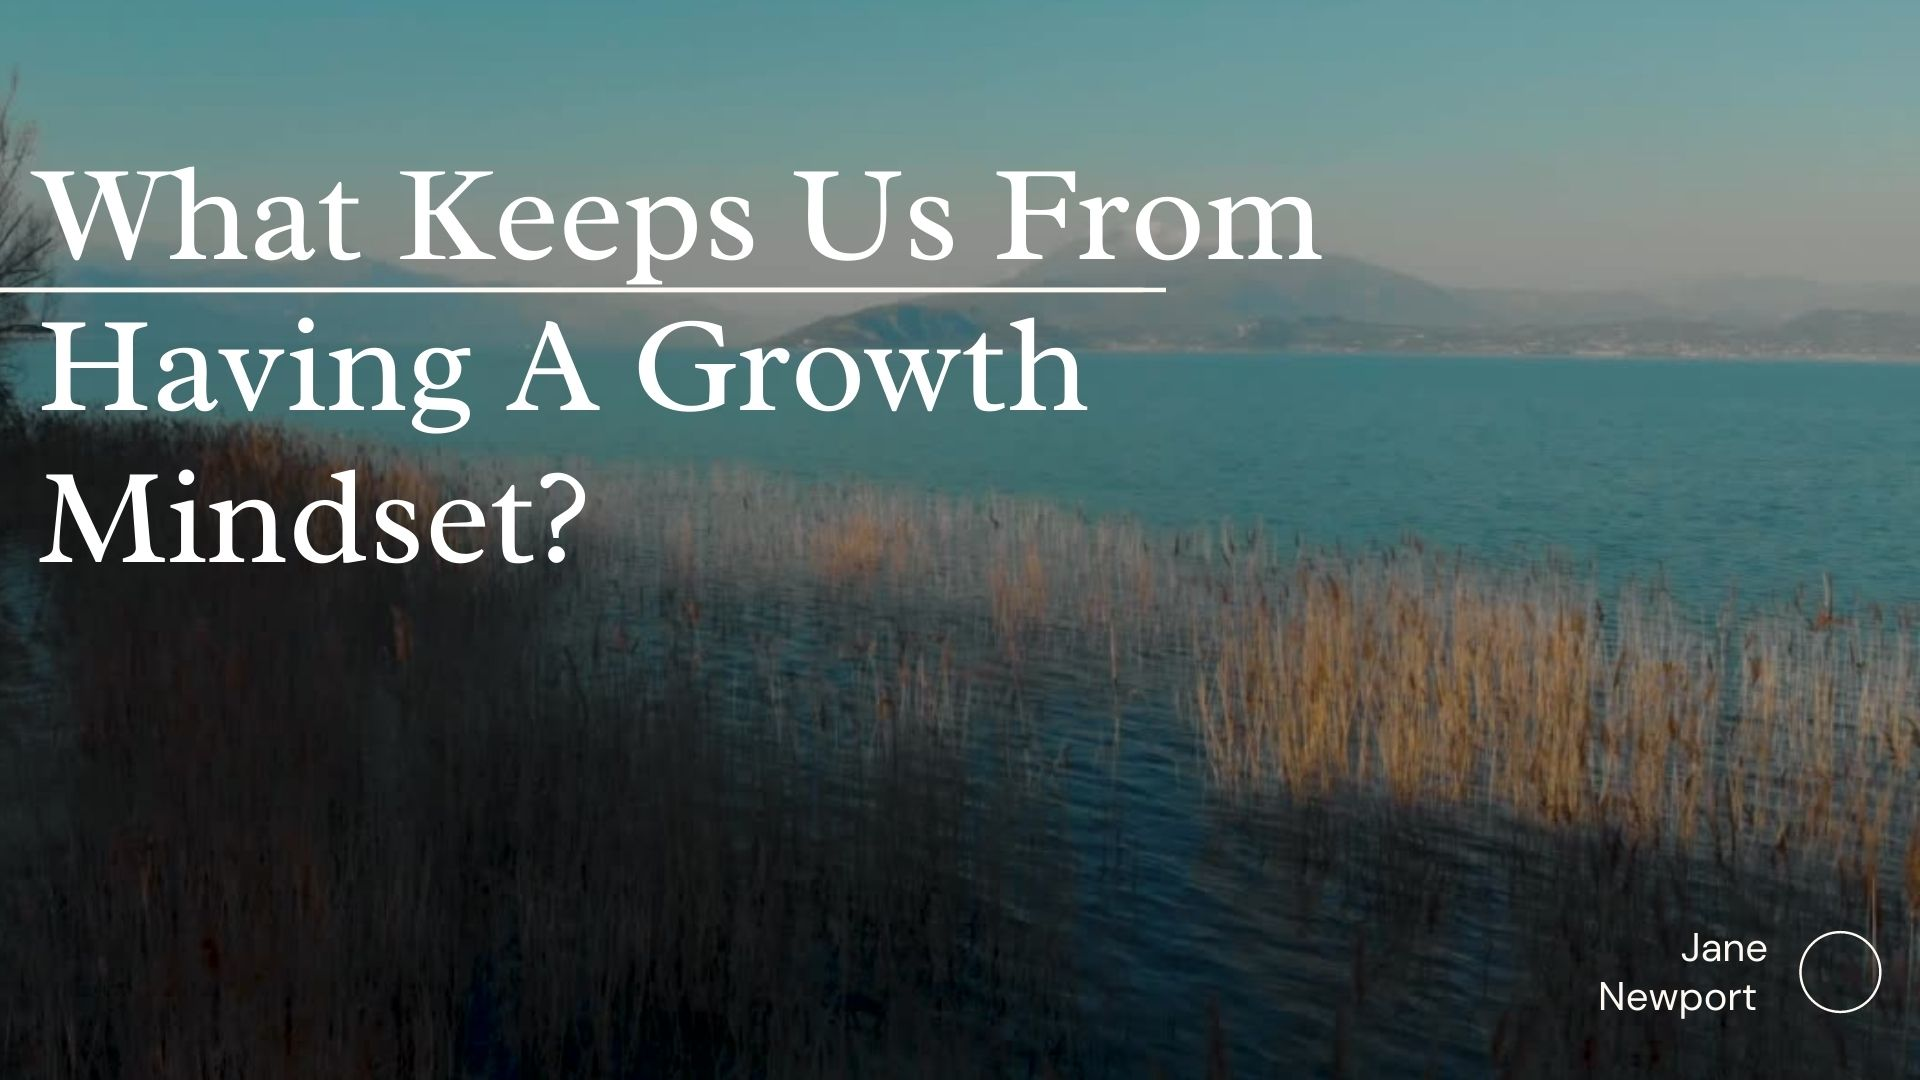 What Keeps Us From Having A Growth Mindset?